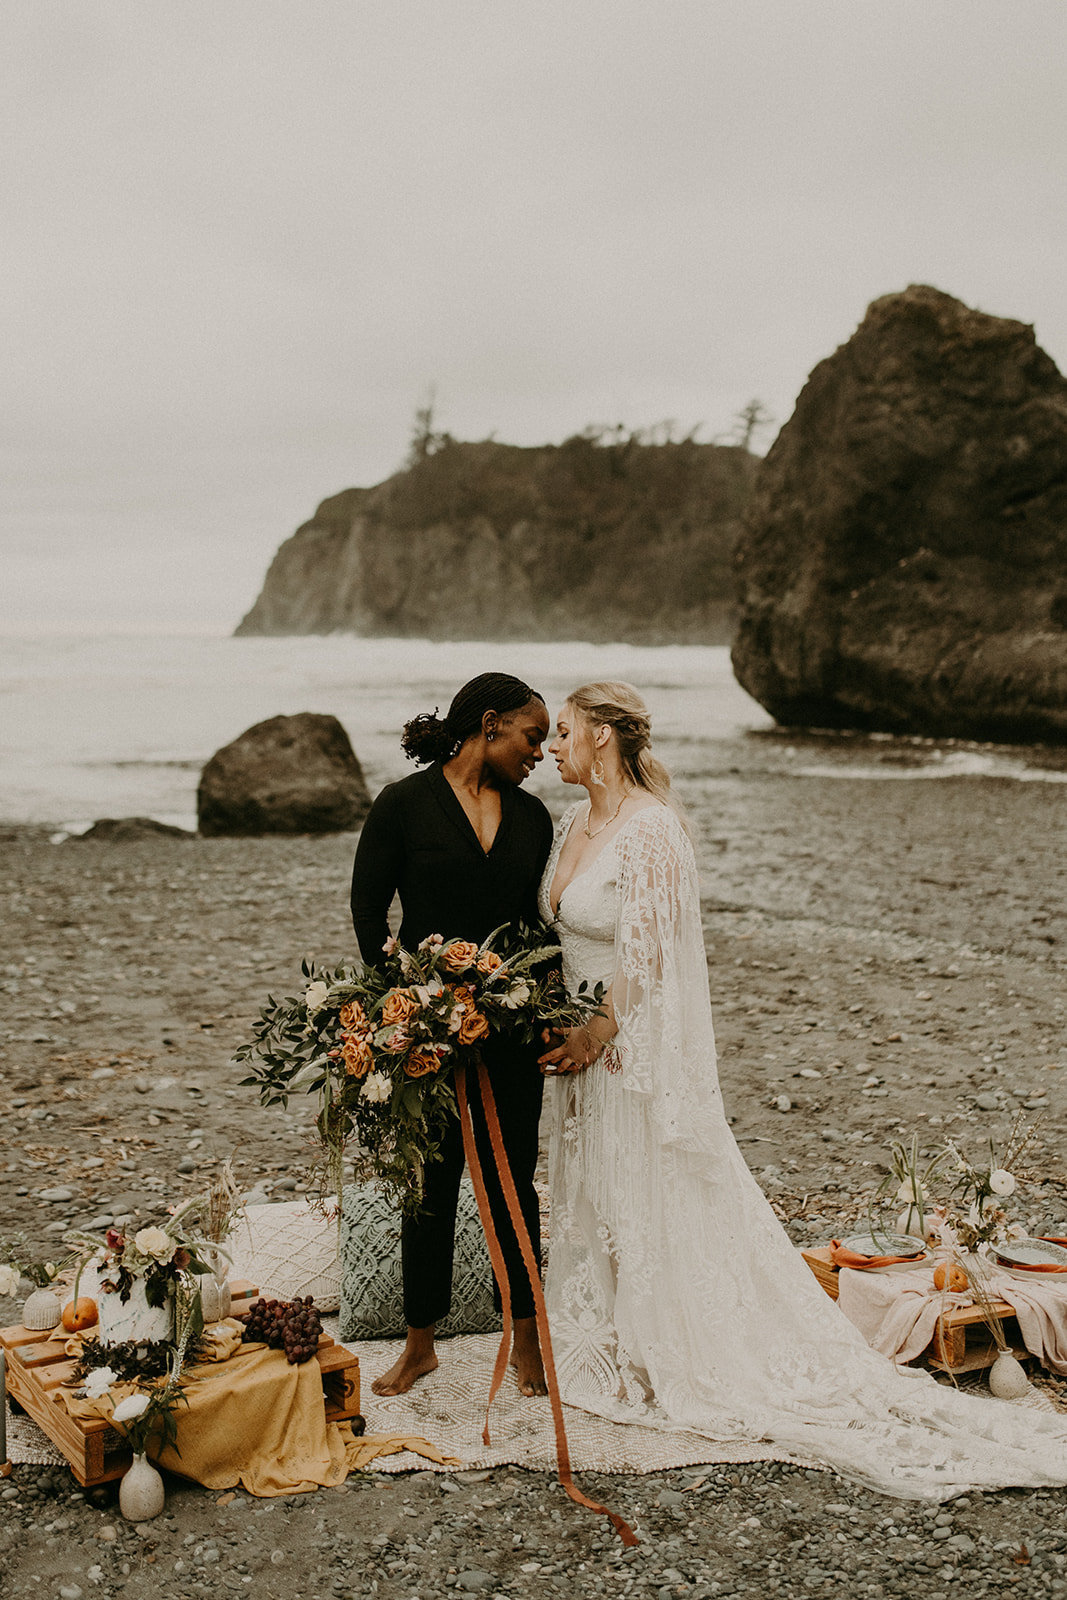 Ruby_Beach_Styled_Elopement_-_Run_Away_with_Me_Elopement_Collective_-_Kamra_Fuller_Photography_-_Portraits-118